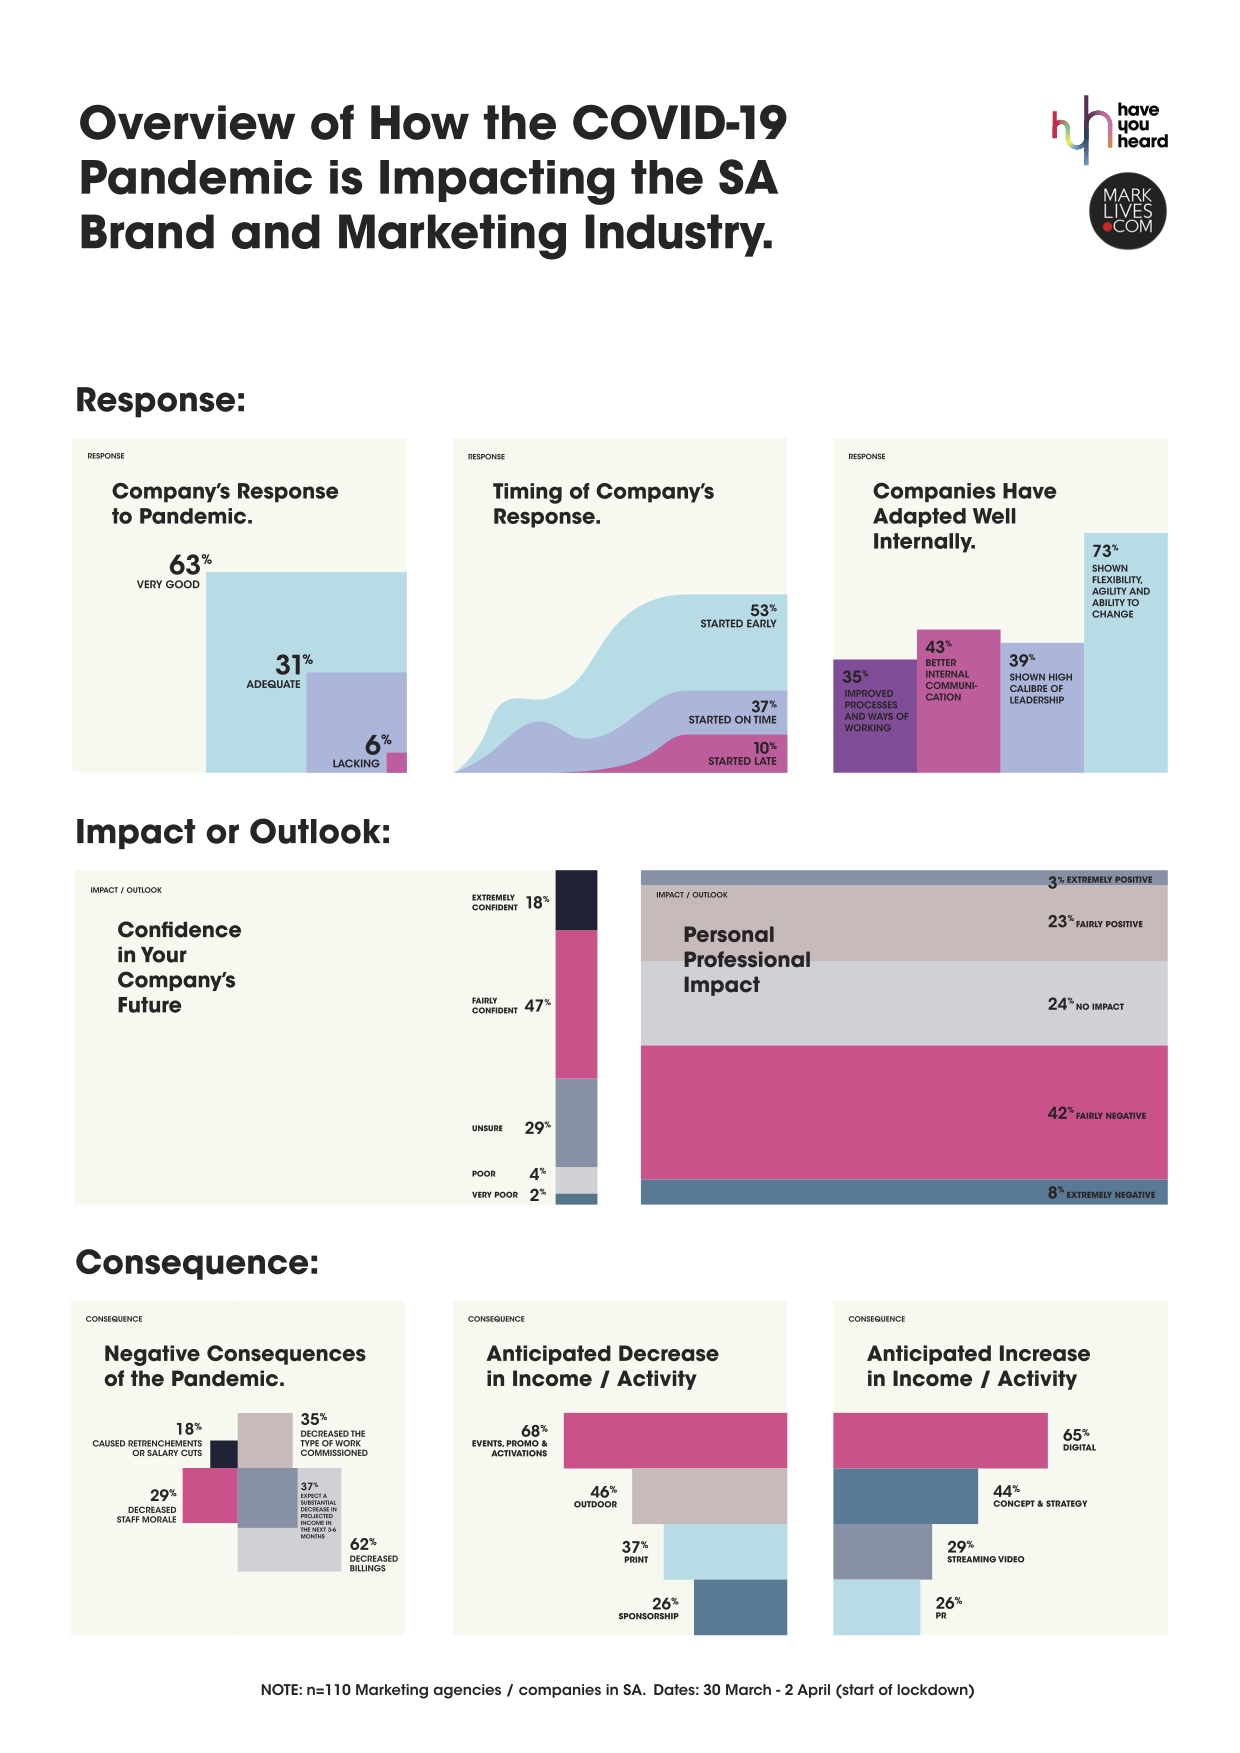 MarkLives & HaveYouHeard covid-19 first survey results infographic